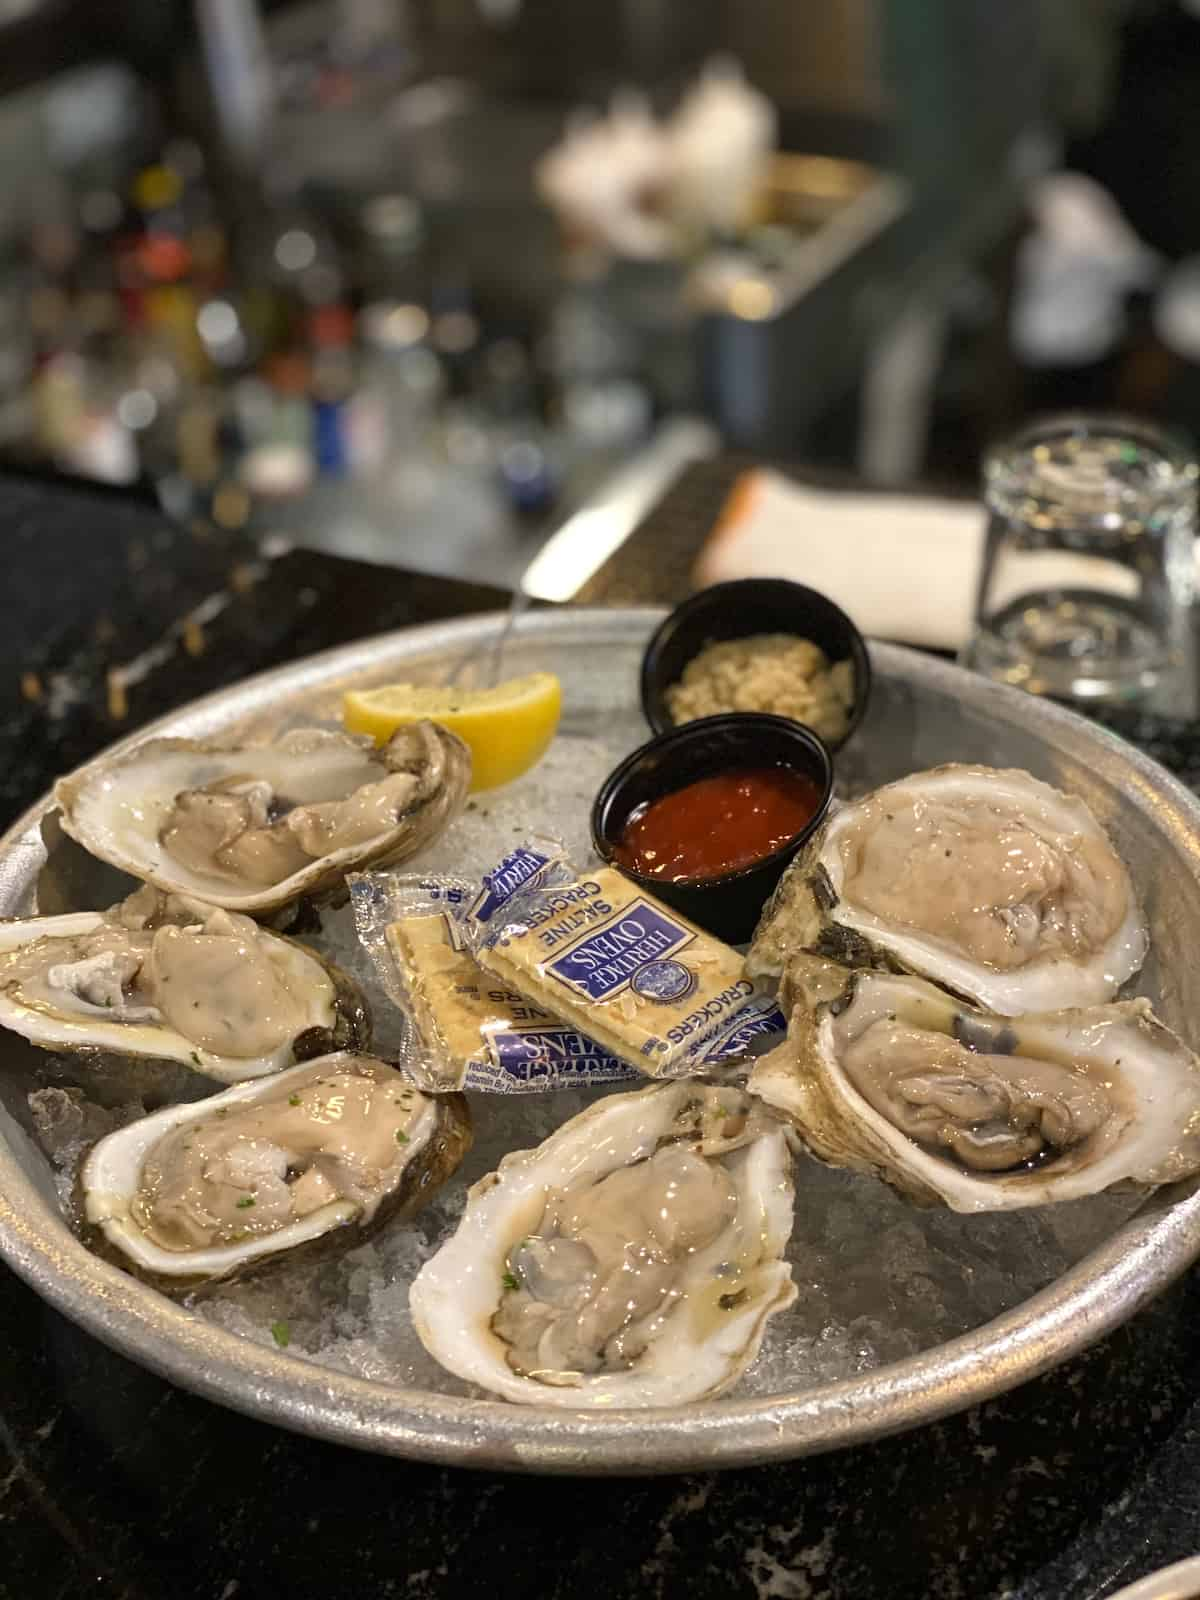 Oysters, cocktail sauce, and crackers on a tray of ice.